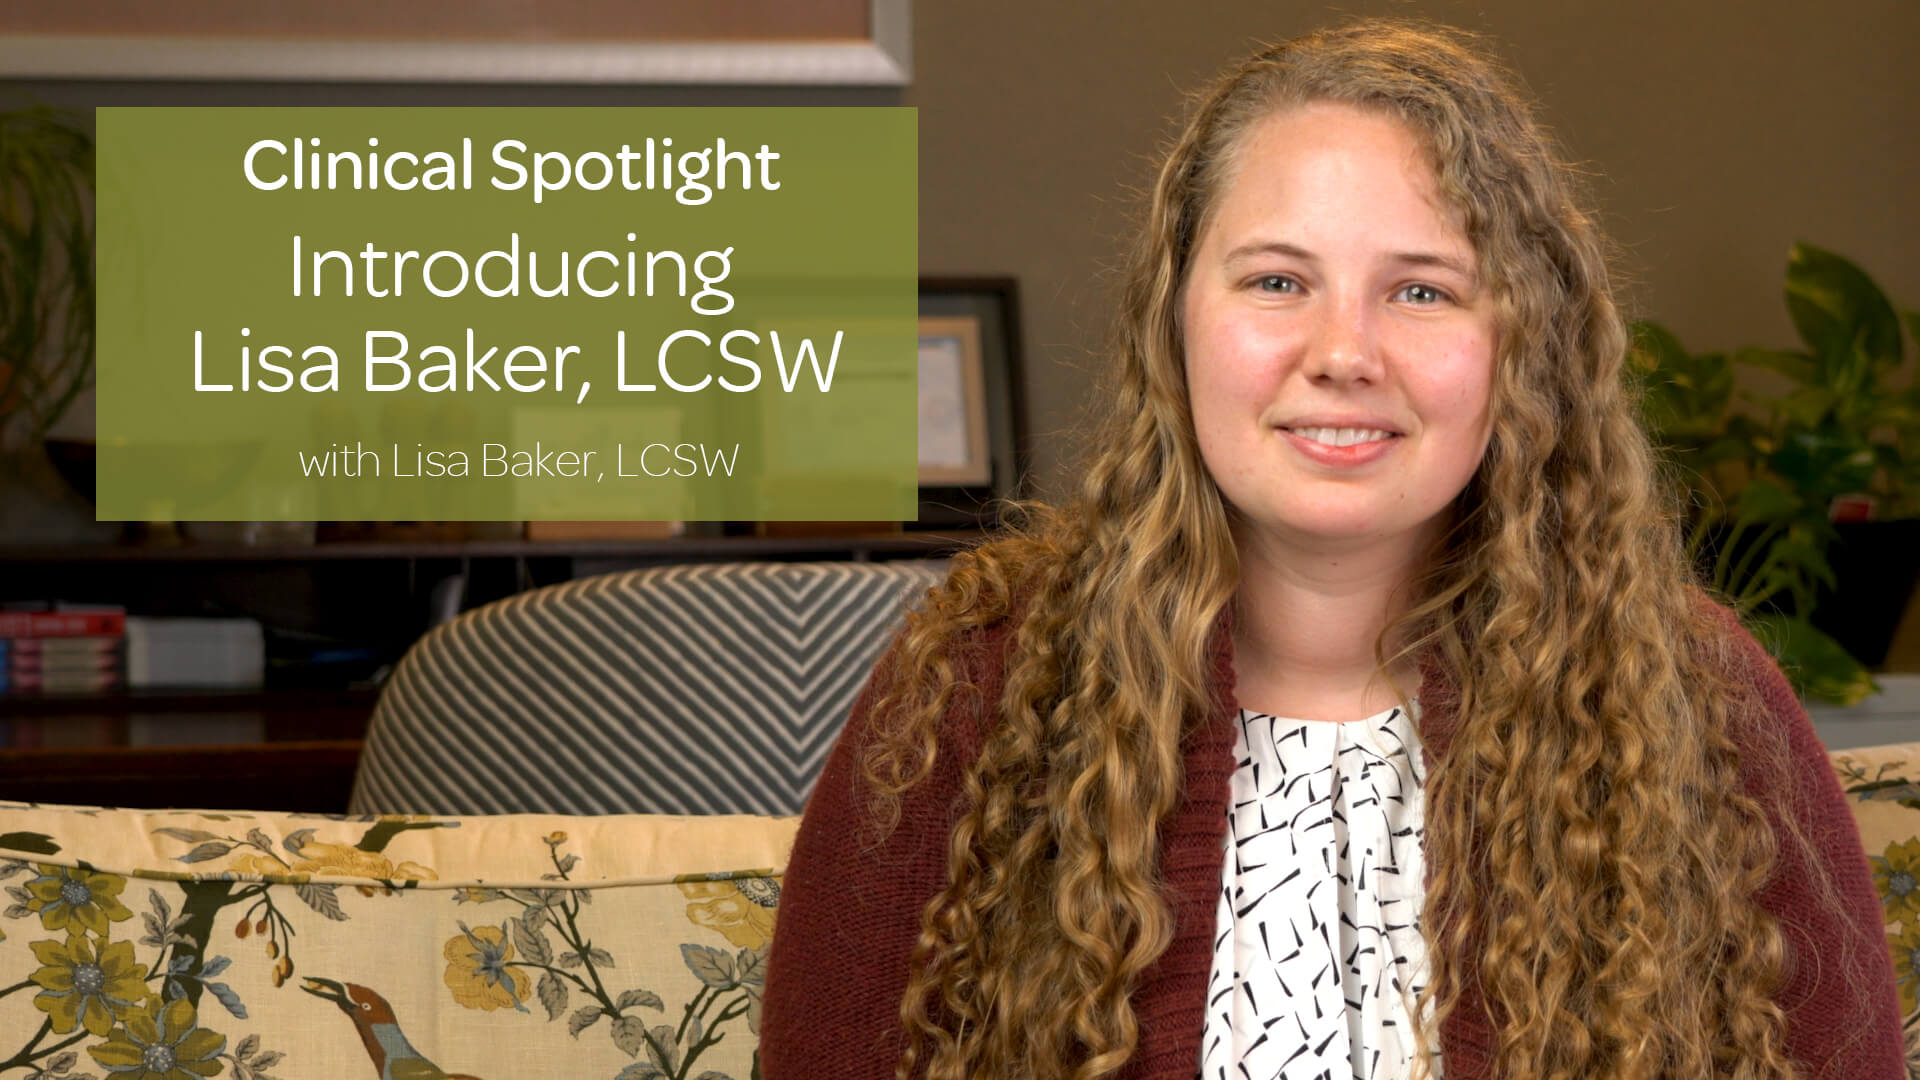 Introducing Lisa Baker, LCSW